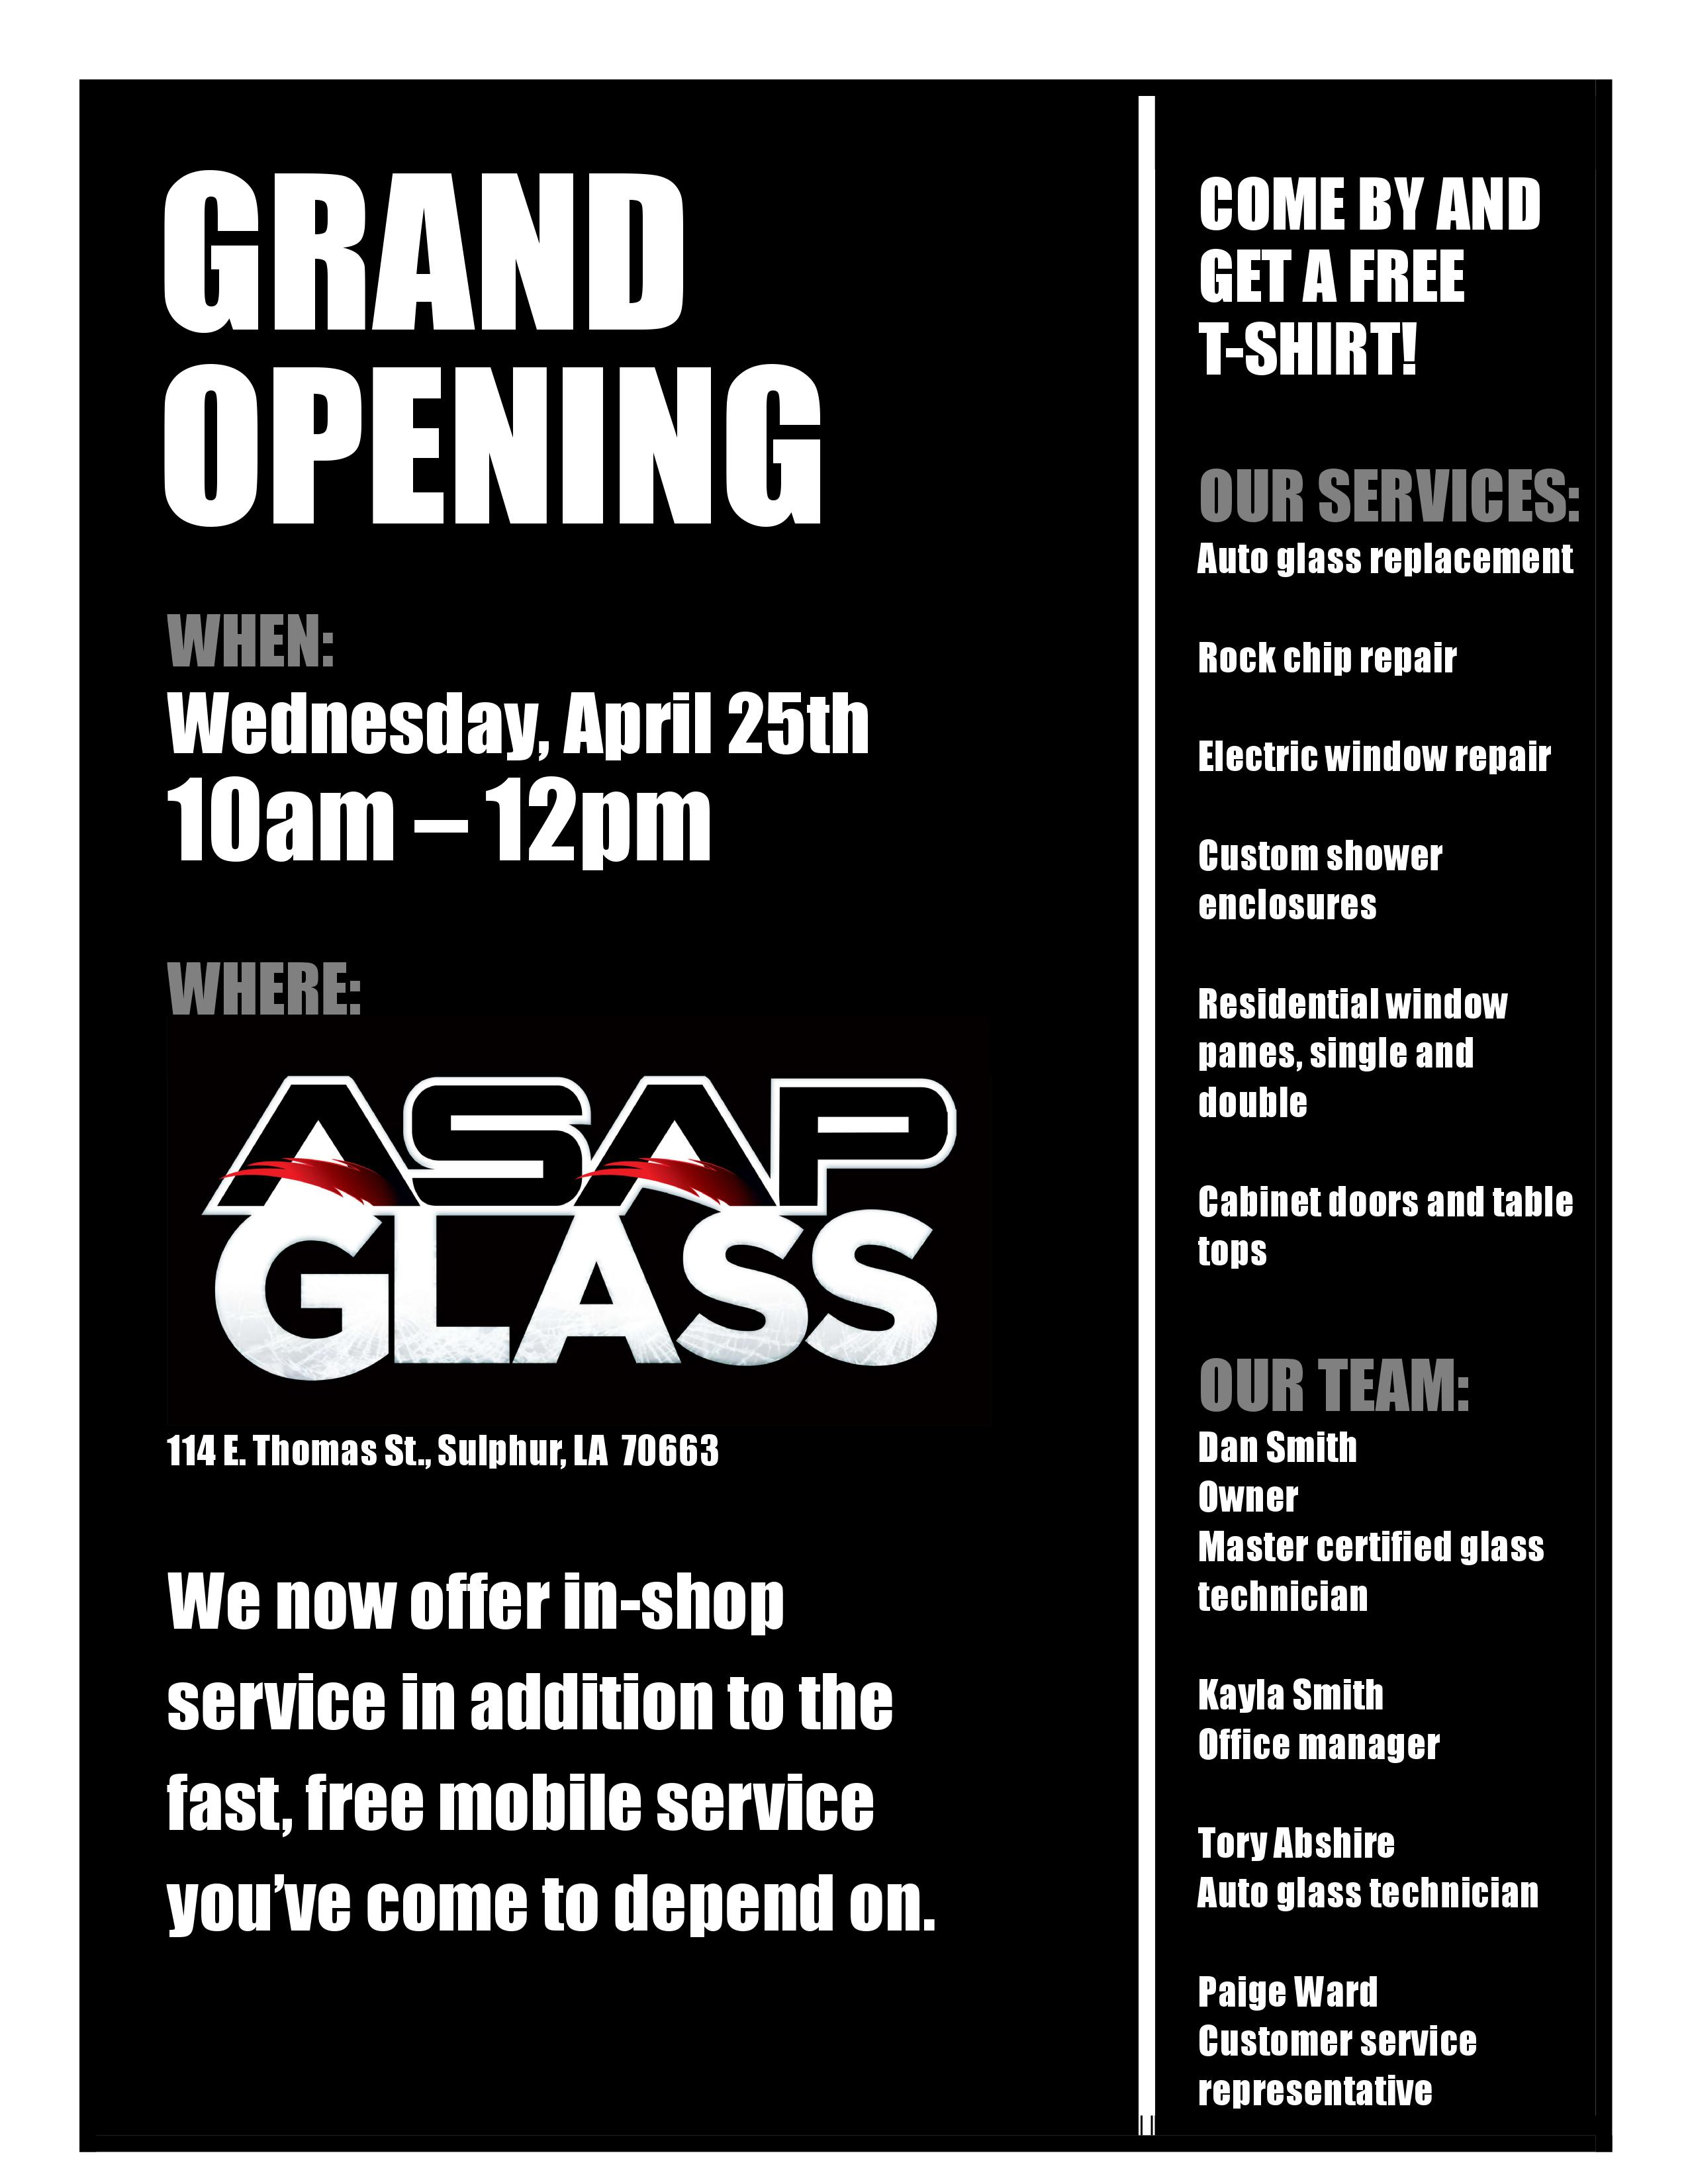 GRAND OPENDING FOR ASAP GLASS